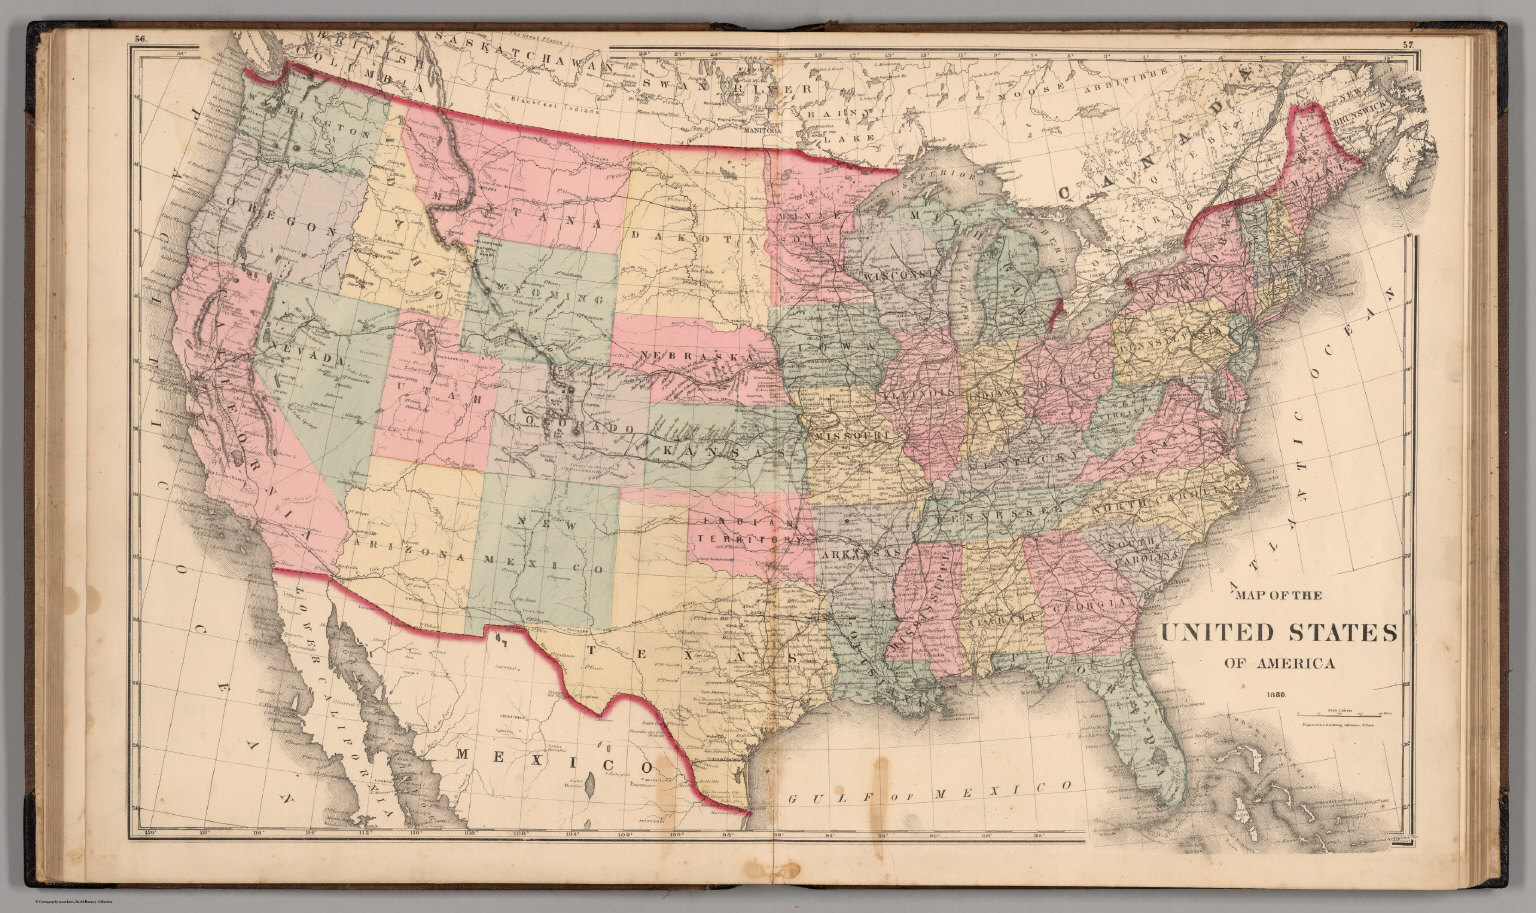 Us Map In 1880 United States of America, 1880.   David Rumsey Historical Map